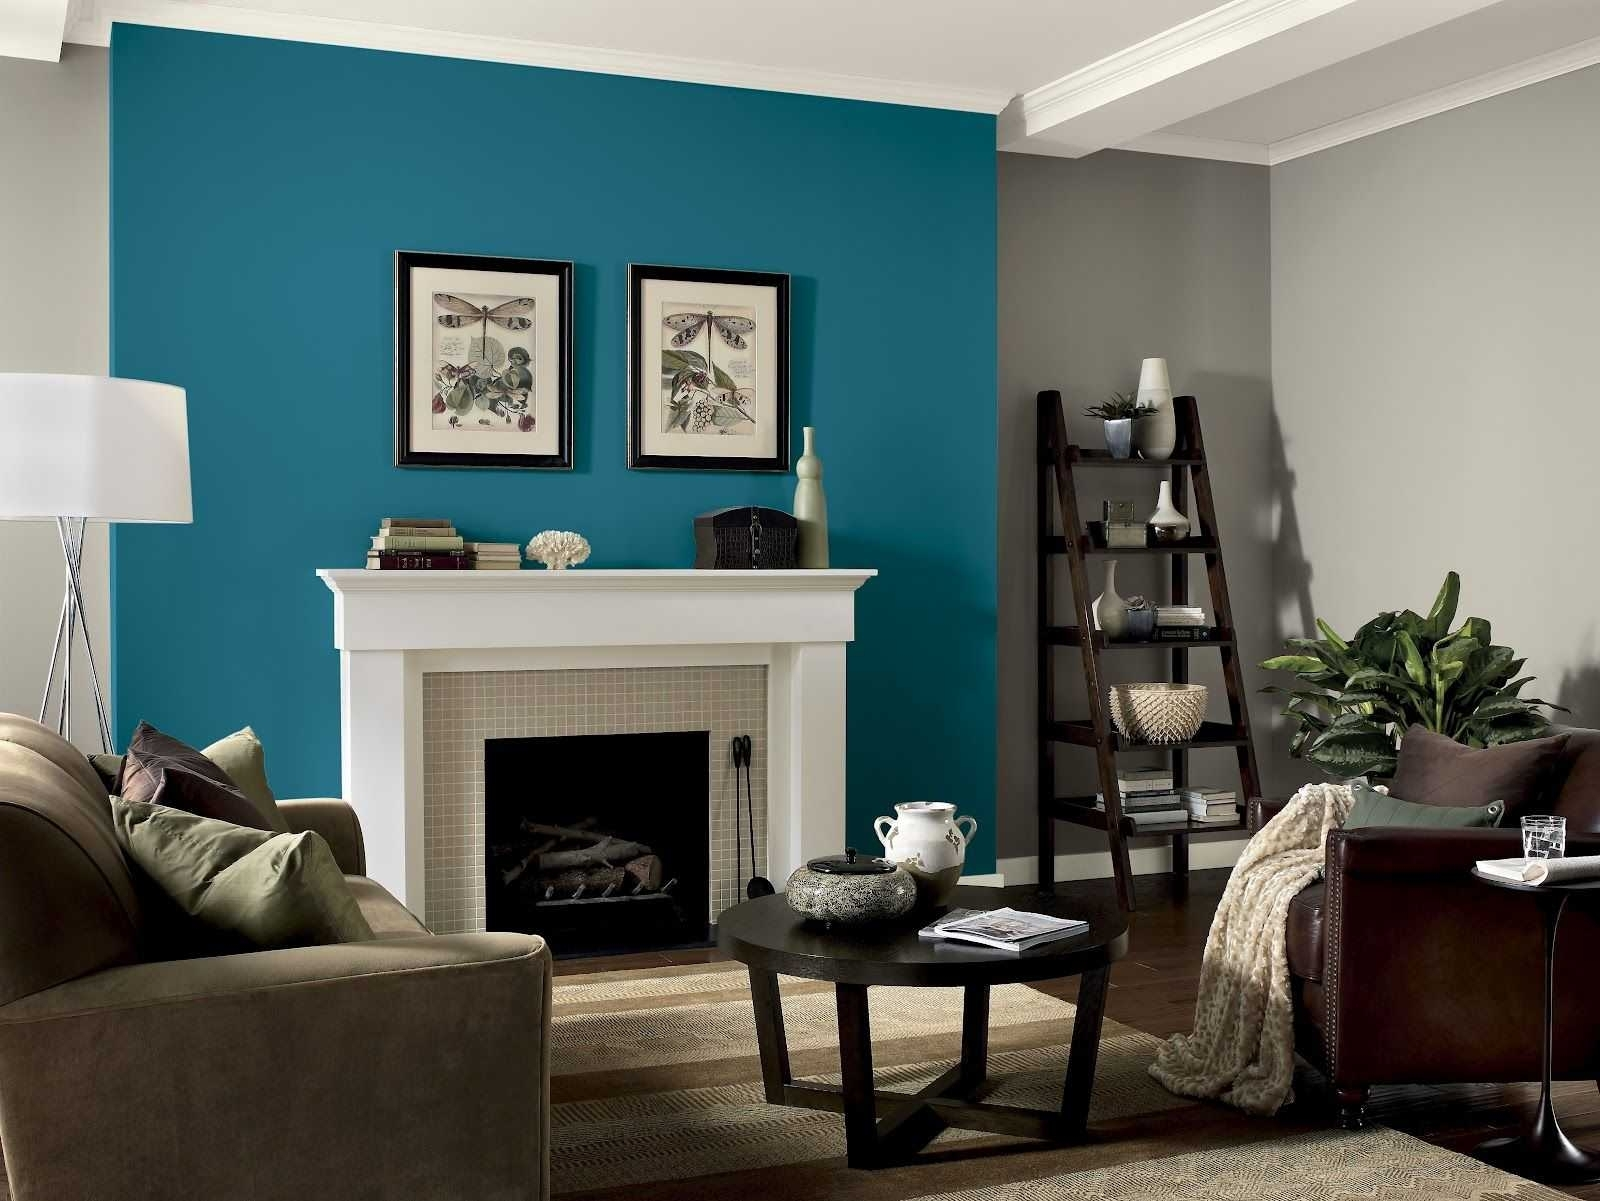 Day Accent Walls Black Inspirations Including Stunning Color intended for Most Recent Wall Accents Color Combinations